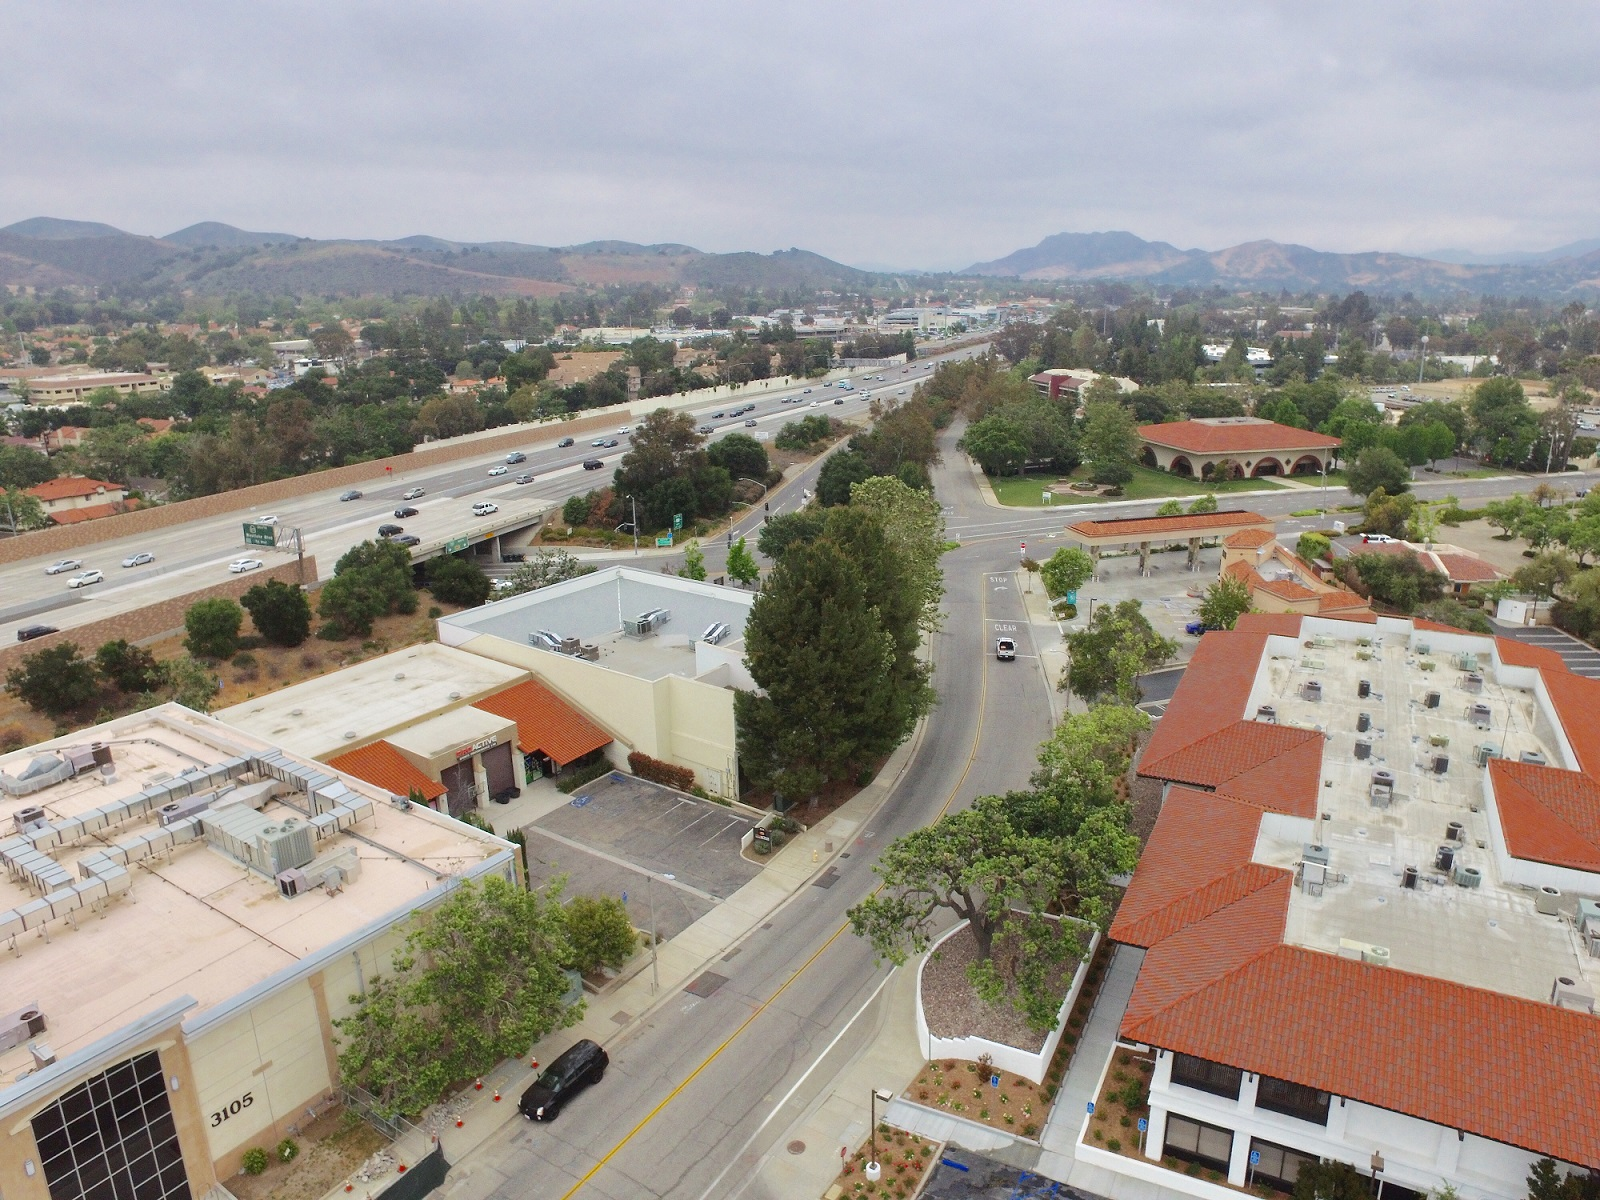 Westlake Village Medical Office For Lease Space Doctor Physican Rent Best Private Practice Hospital Surgical 33.jpg